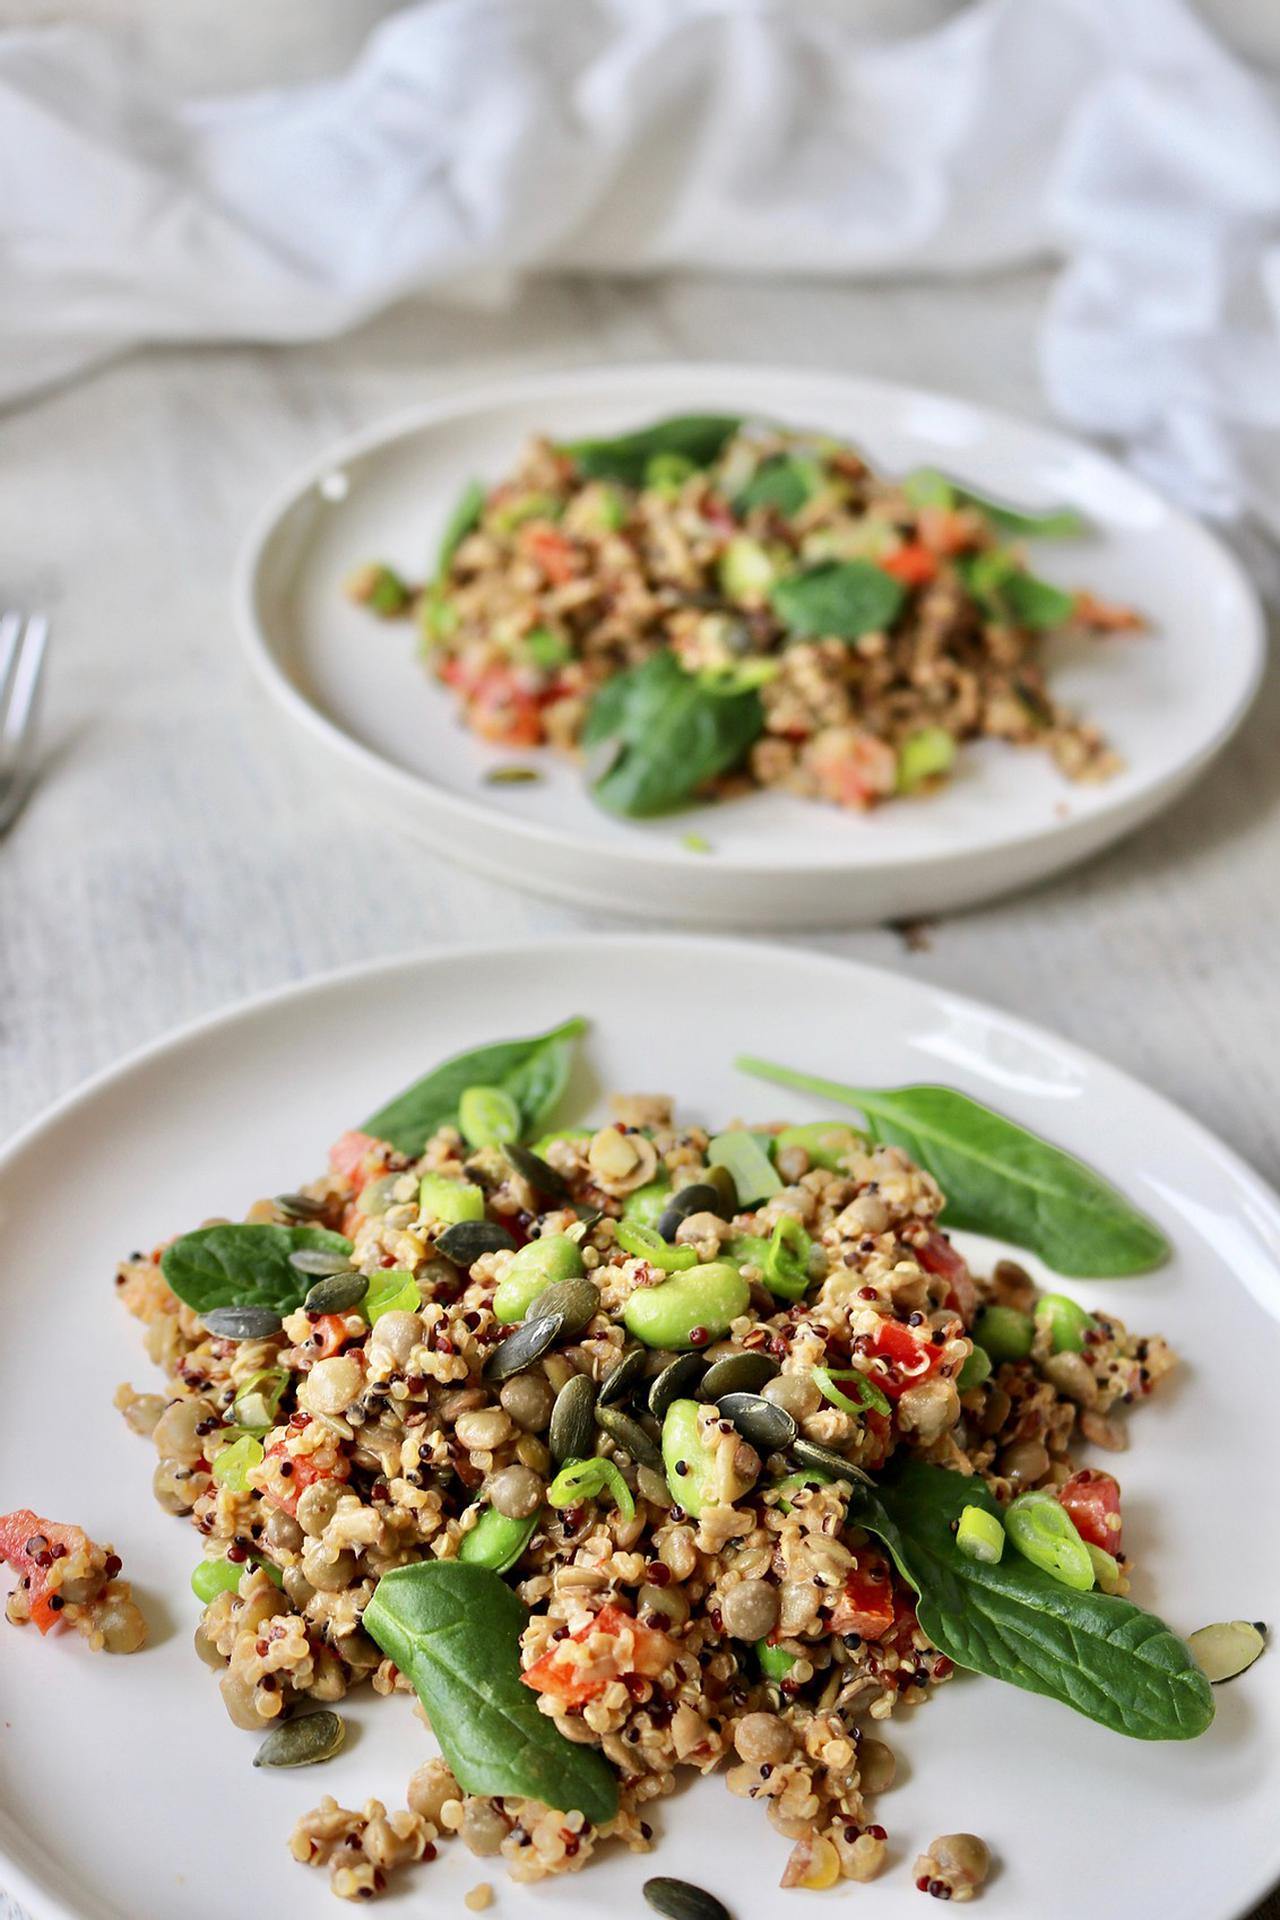 Main image of Protein-Packed Lentil & Quinoa Salad